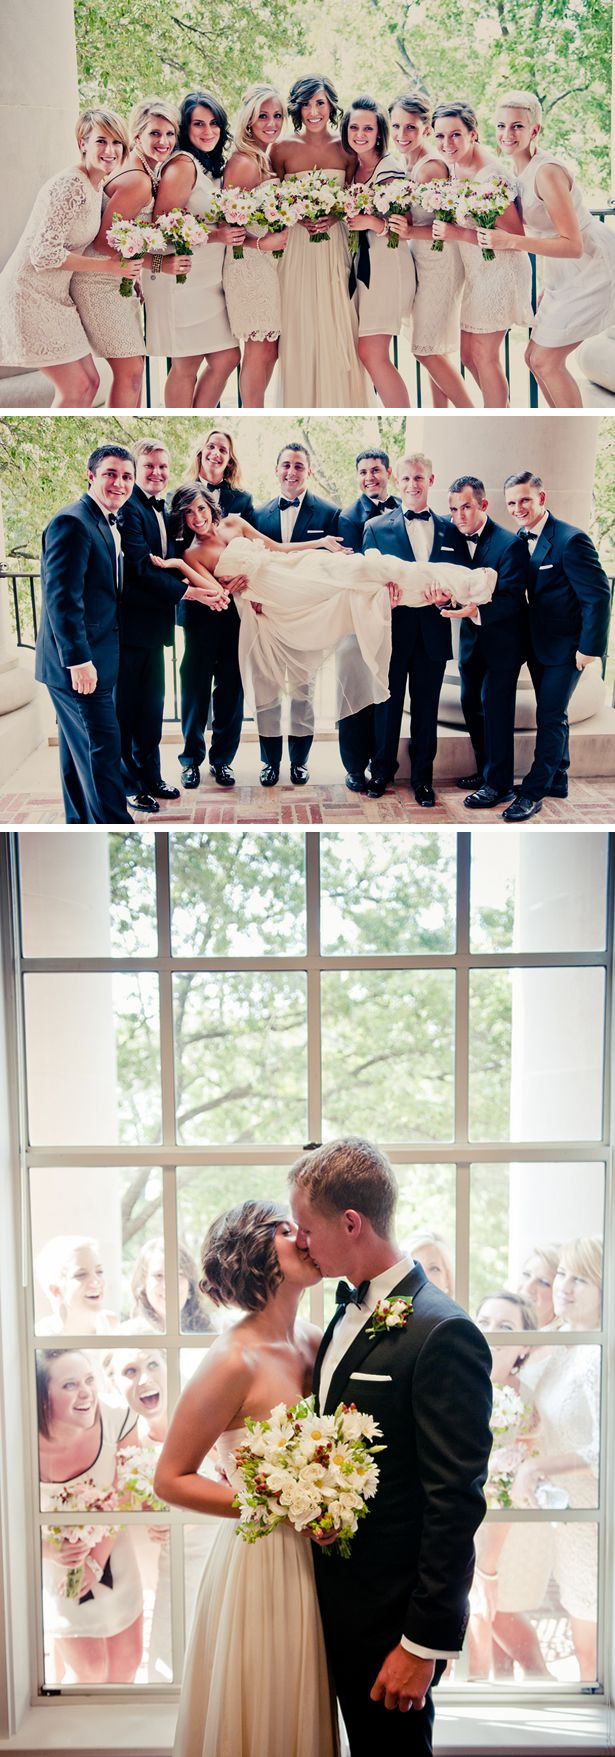 A vintage wedding in Texas! Love these photos. {LongBrook Photograph}